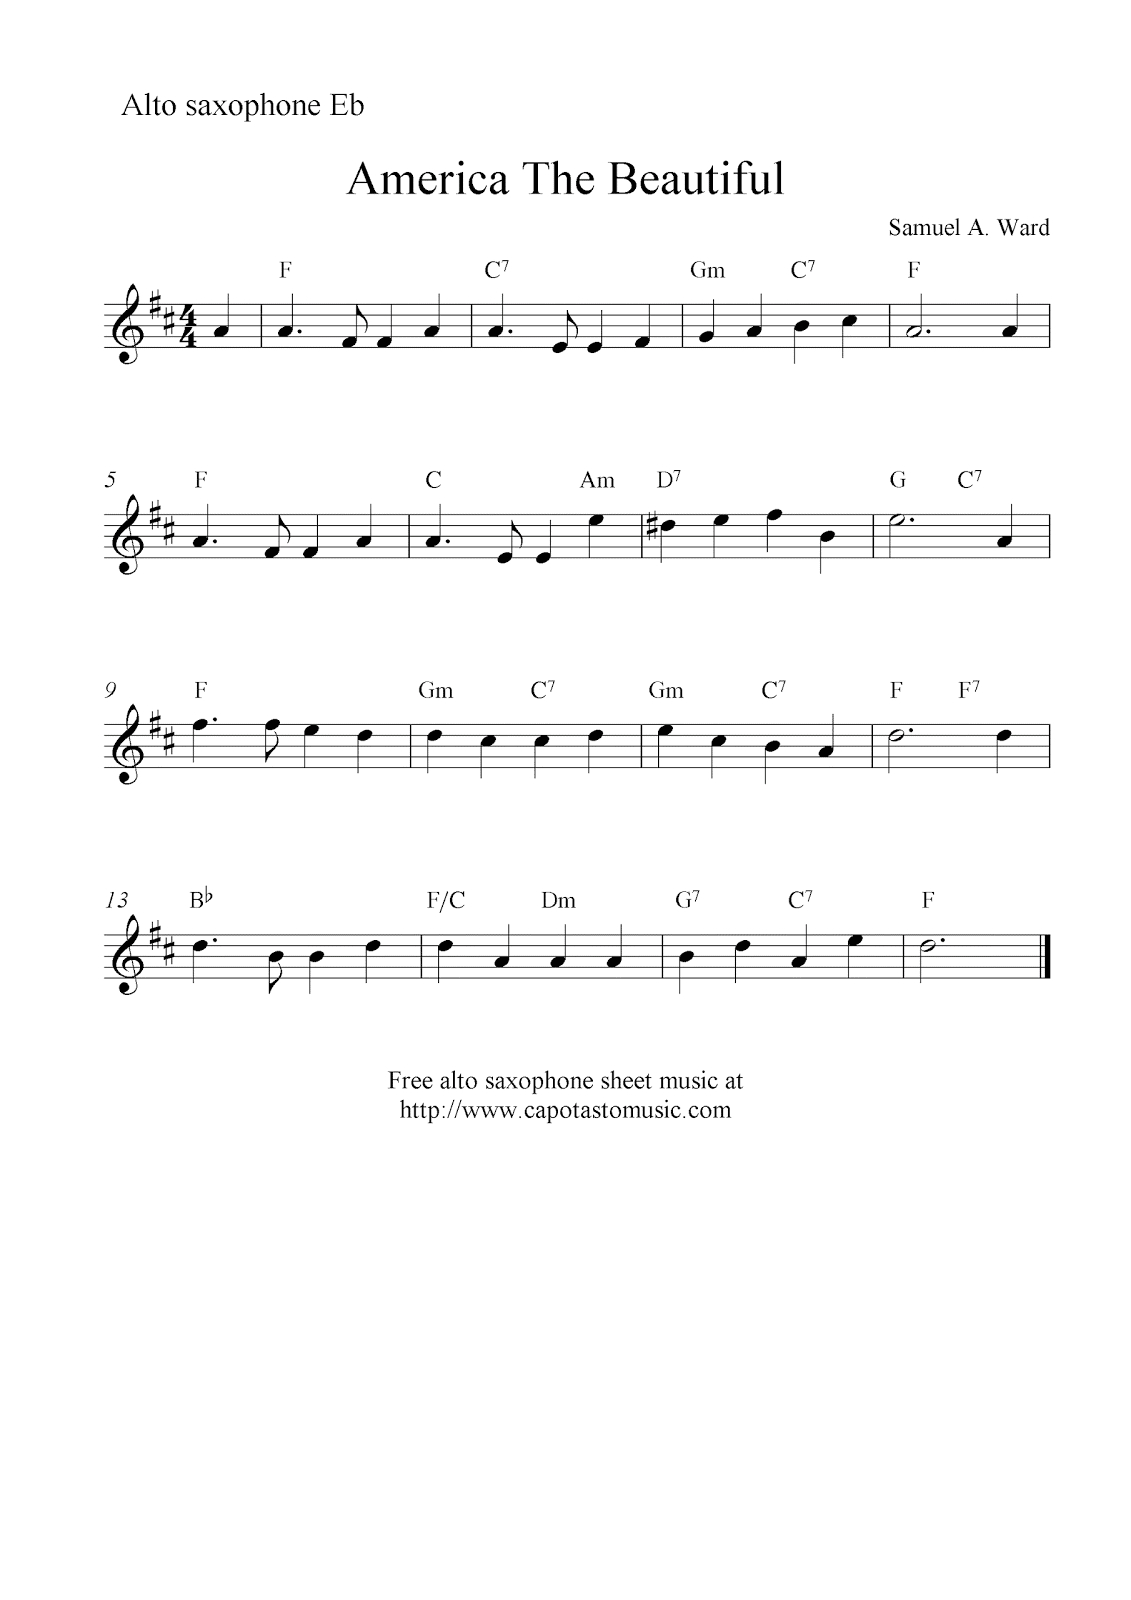 America The Beautiful, Free Alto Saxophone Sheet Music Notes - Free Printable Alto Saxophone Sheet Music